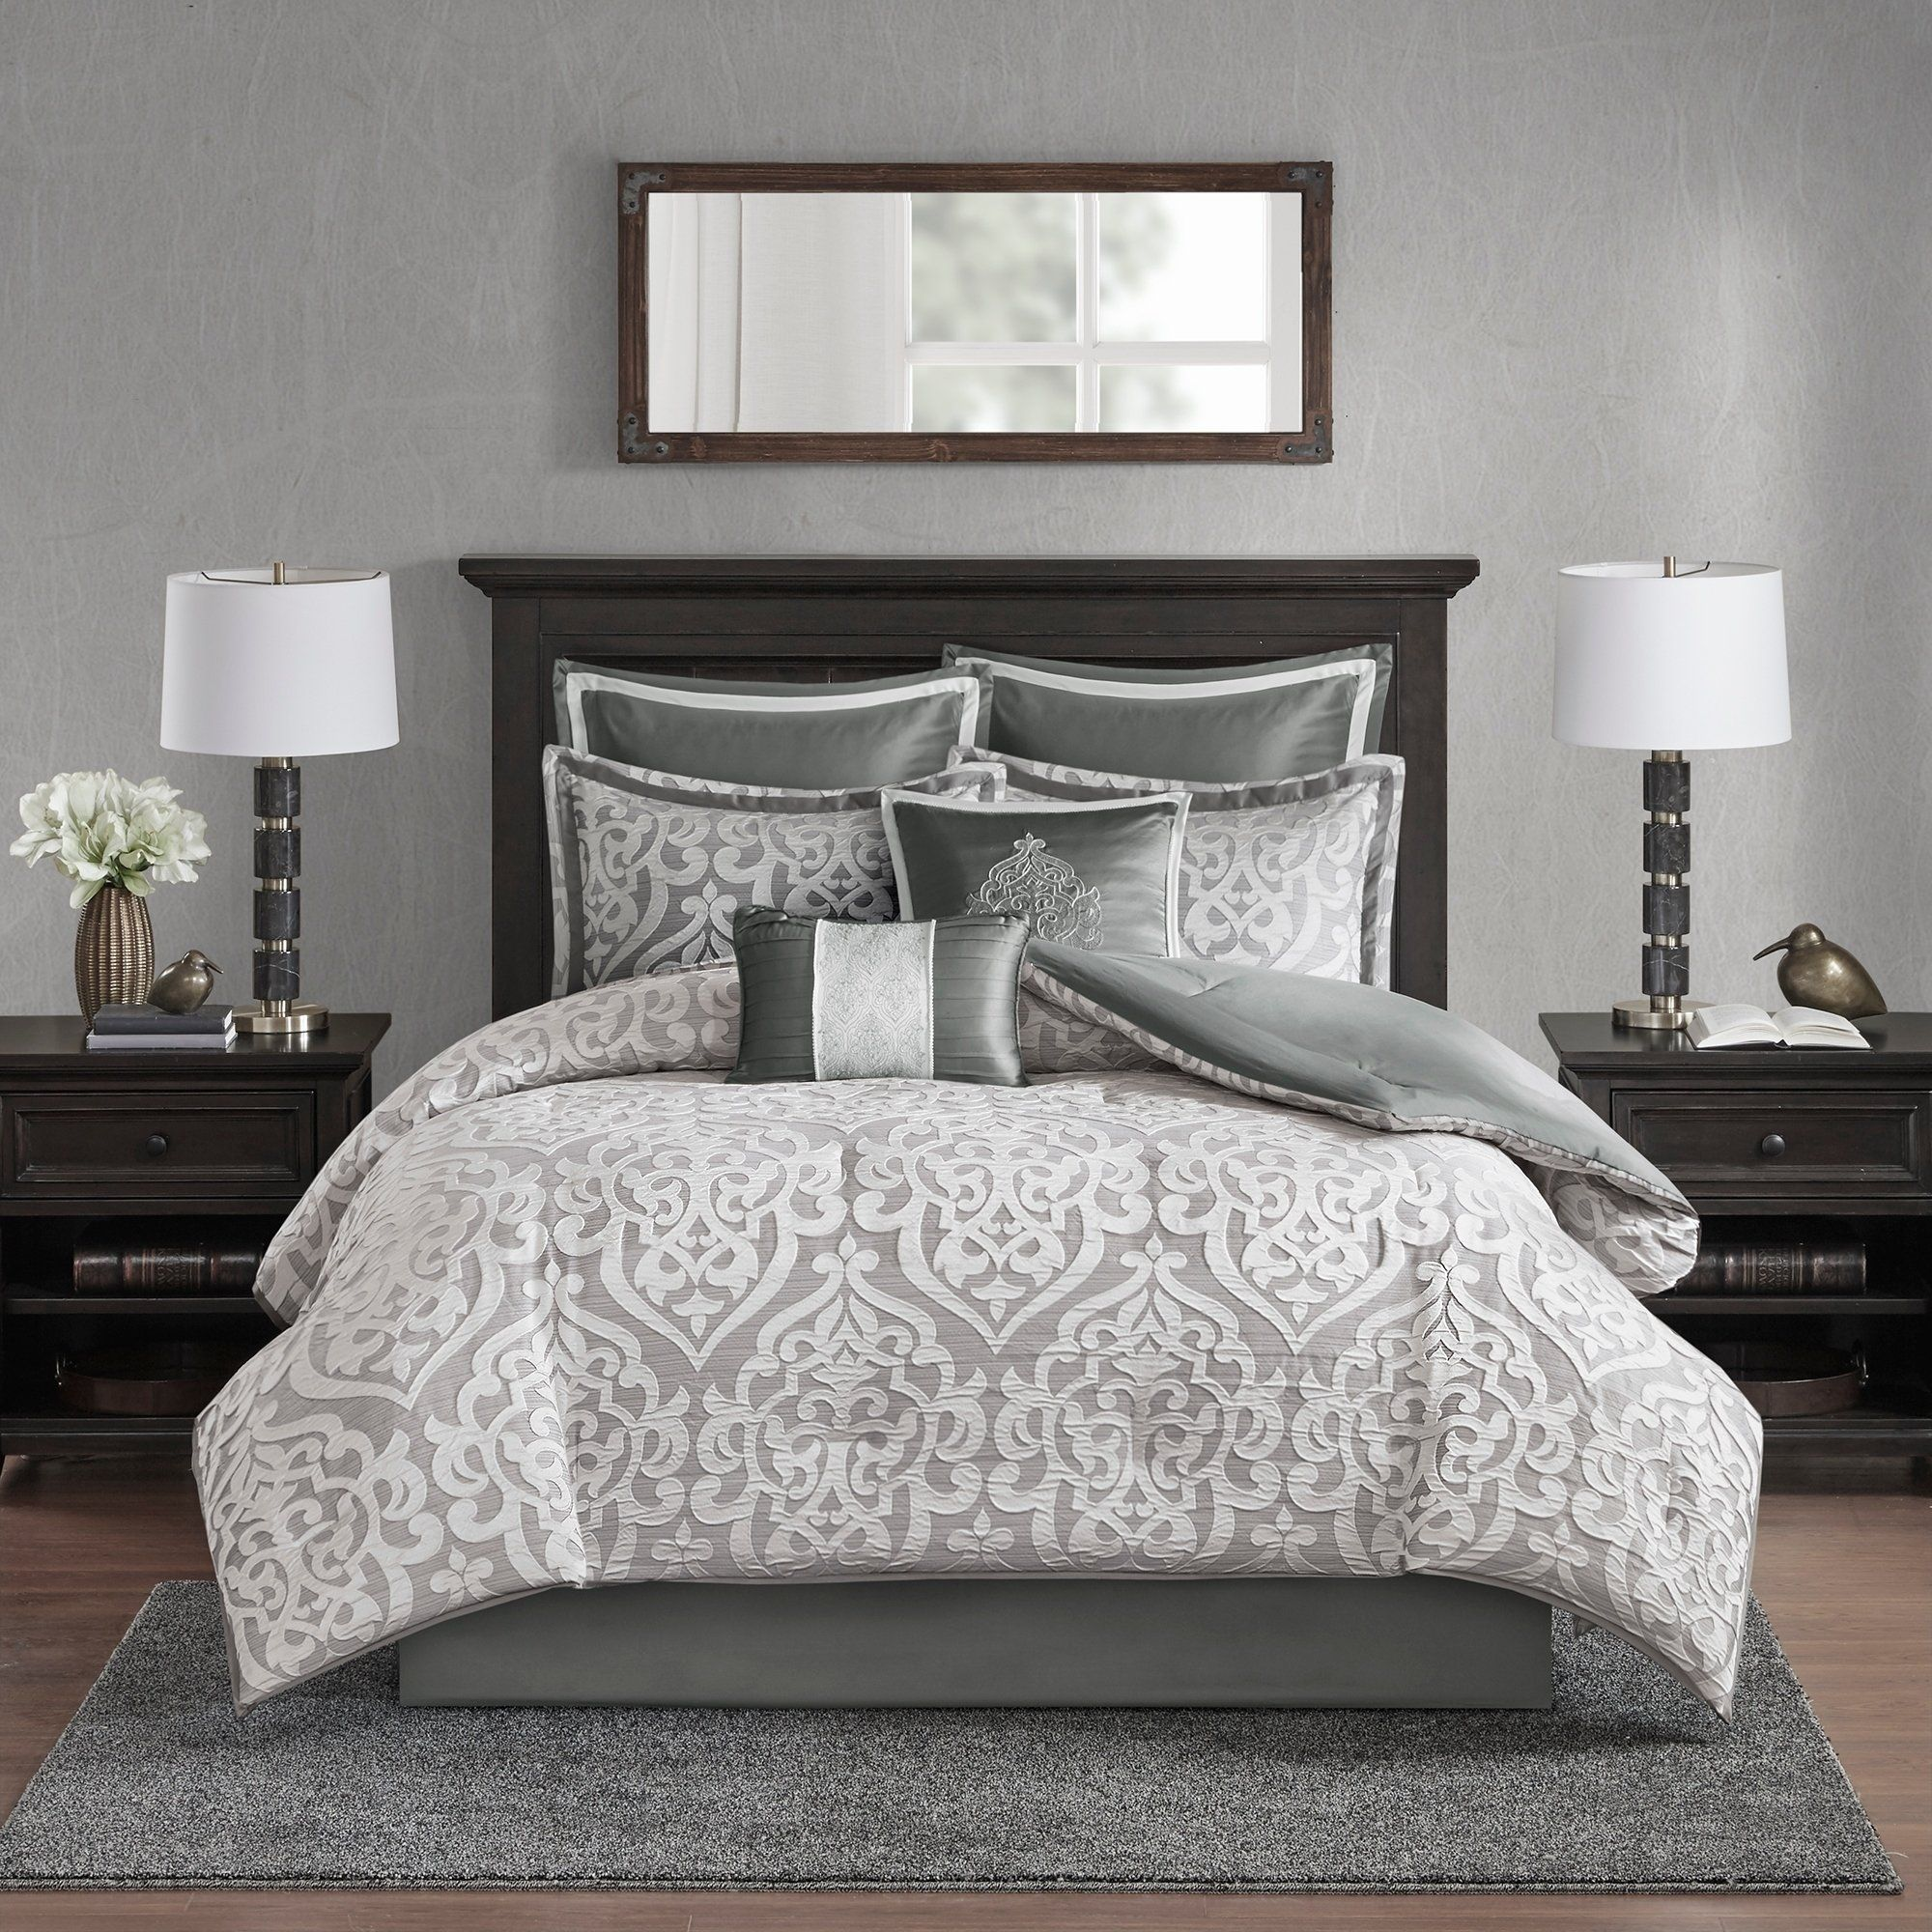 Pin By Rebekah Whitcomb On My Dream House Ideas Comforter Sets King Comforter Sets Home Decor